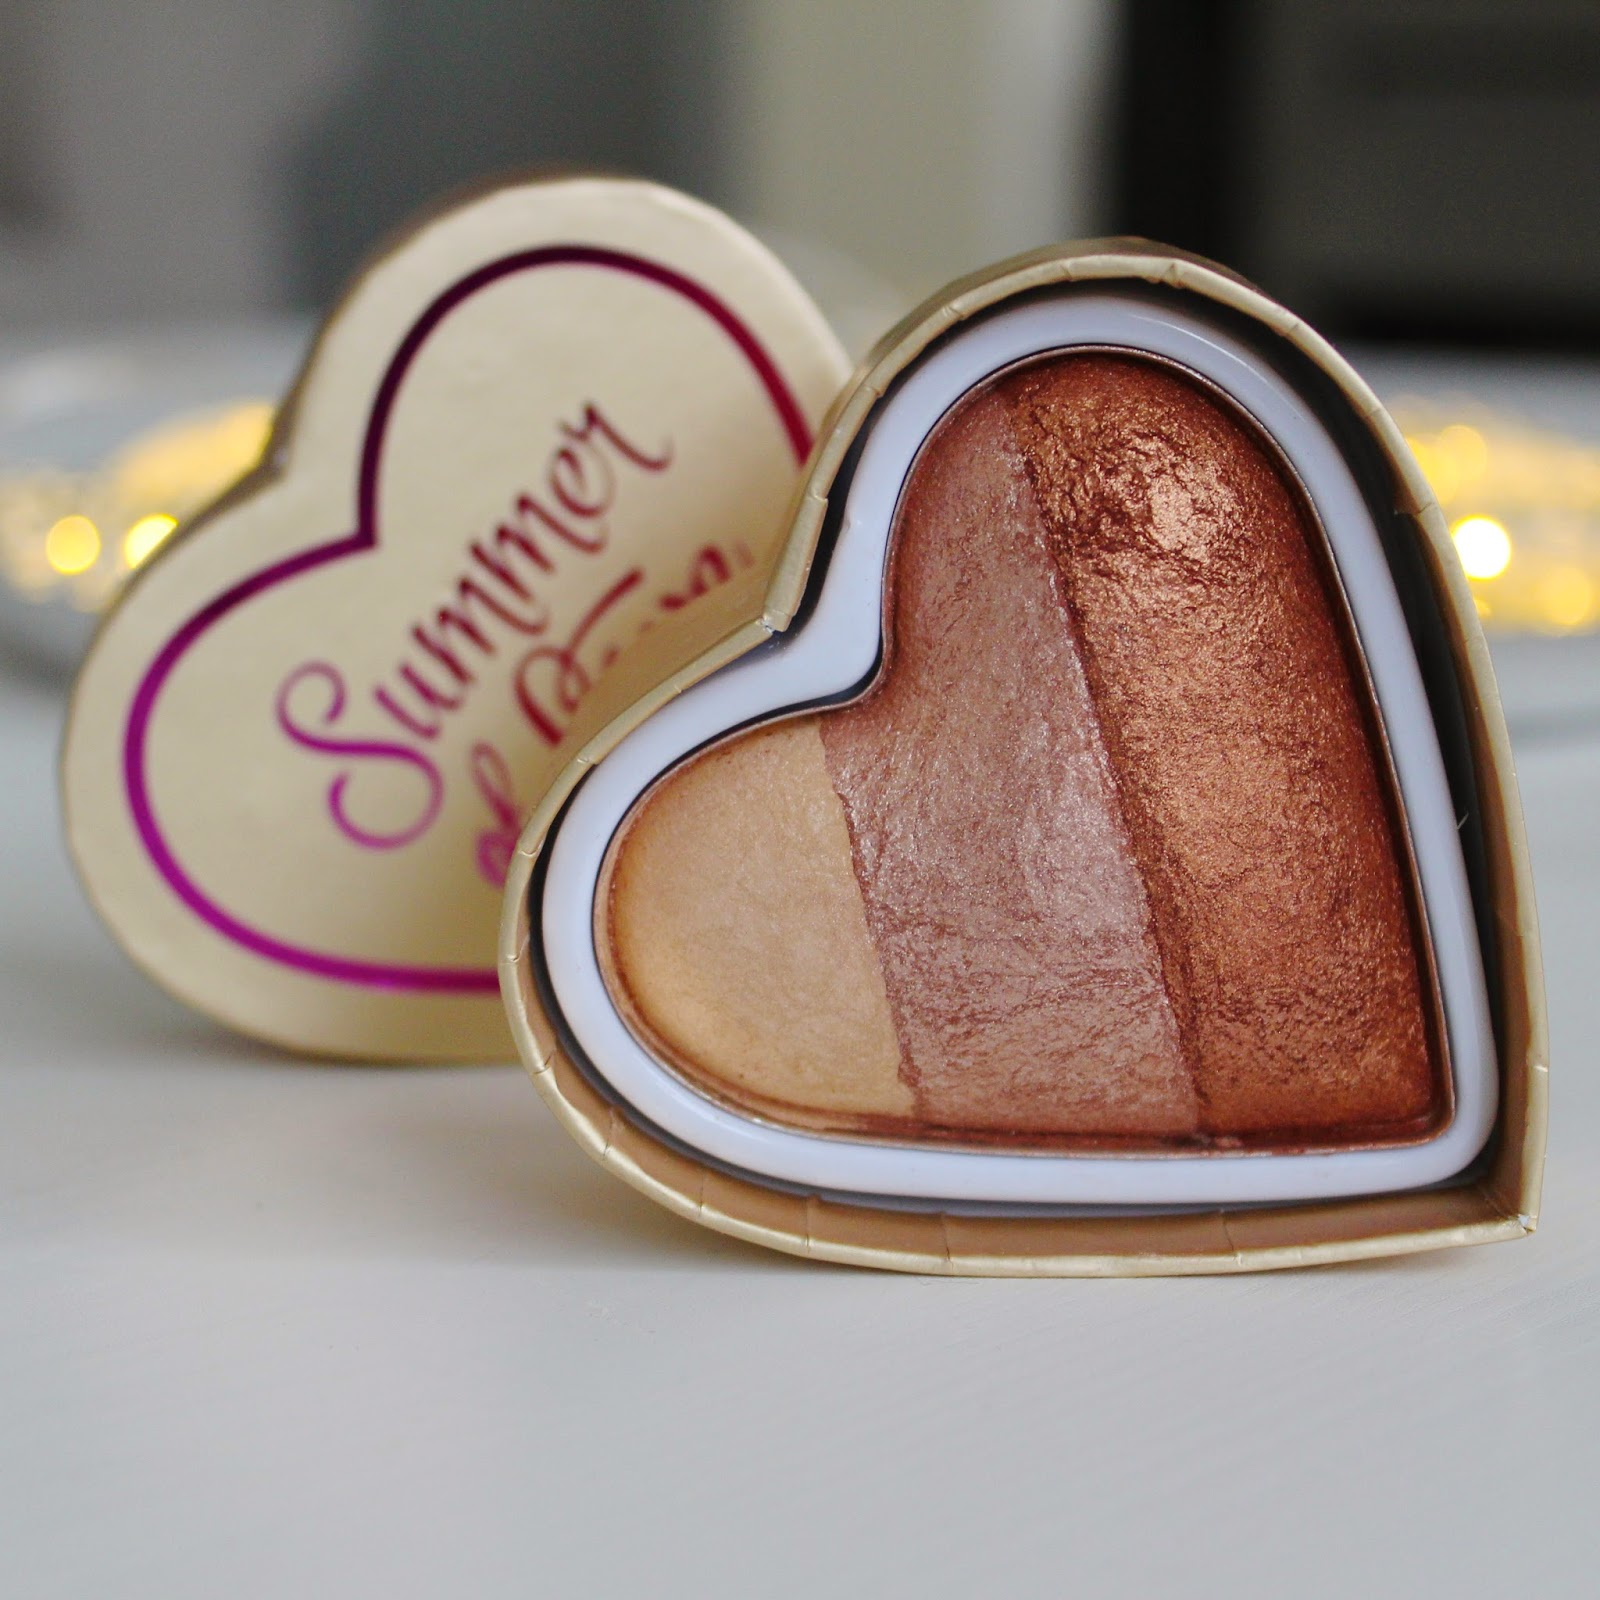 All three of these new additions are gorgeous, highly pigmented, bright, shimmering shades. The bronzer in hot summer of love contains three bronzer shades ...